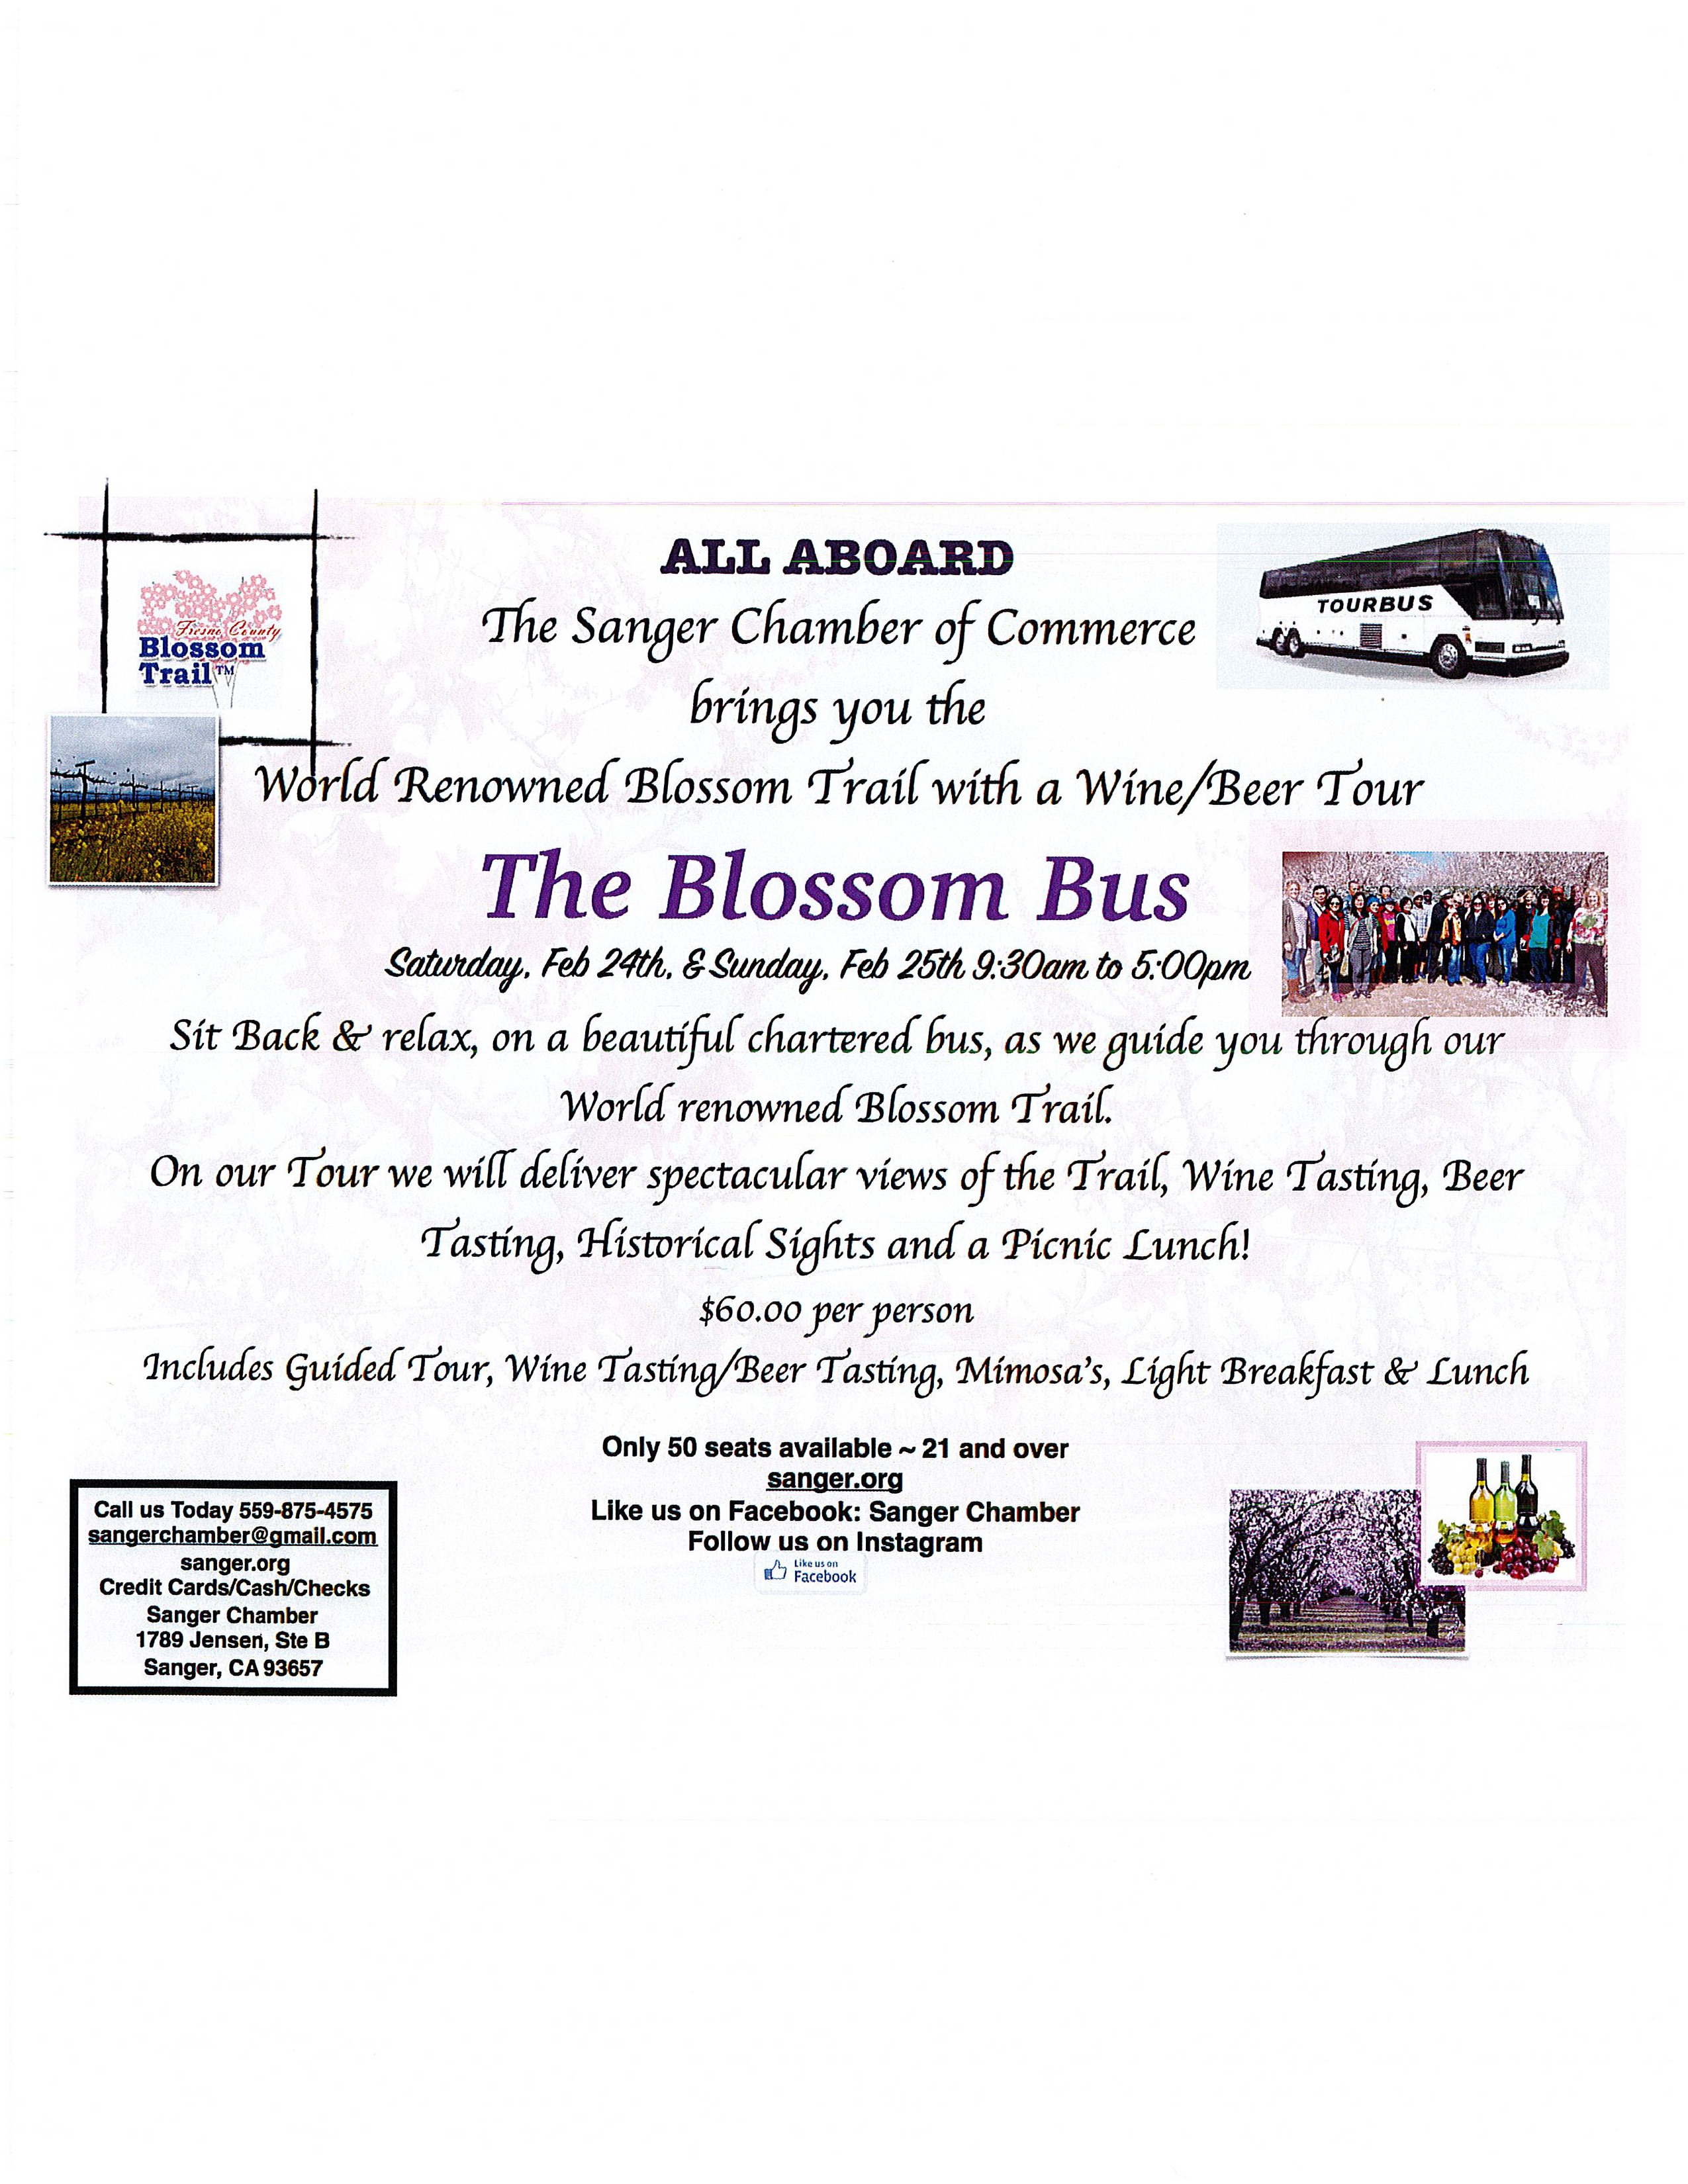 blossombus-page-0